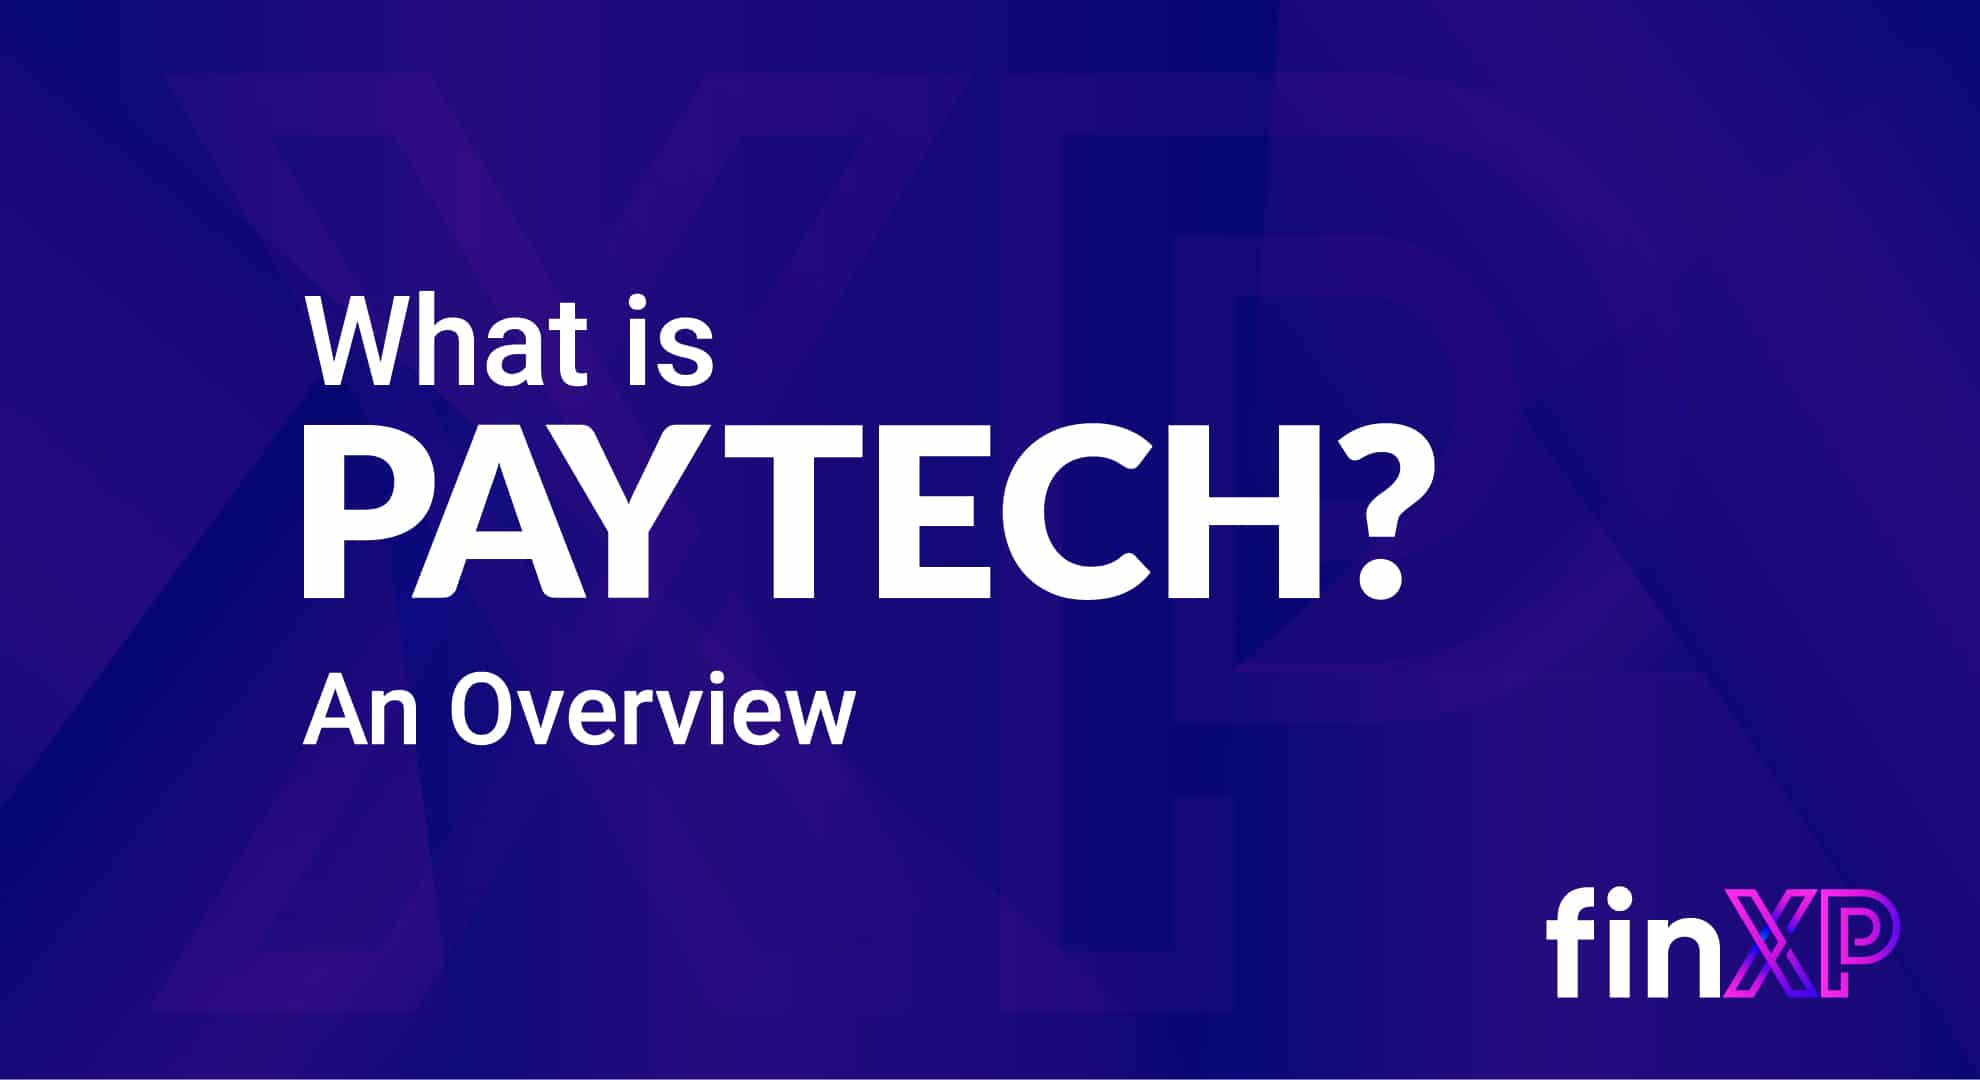 What is PayTech? image